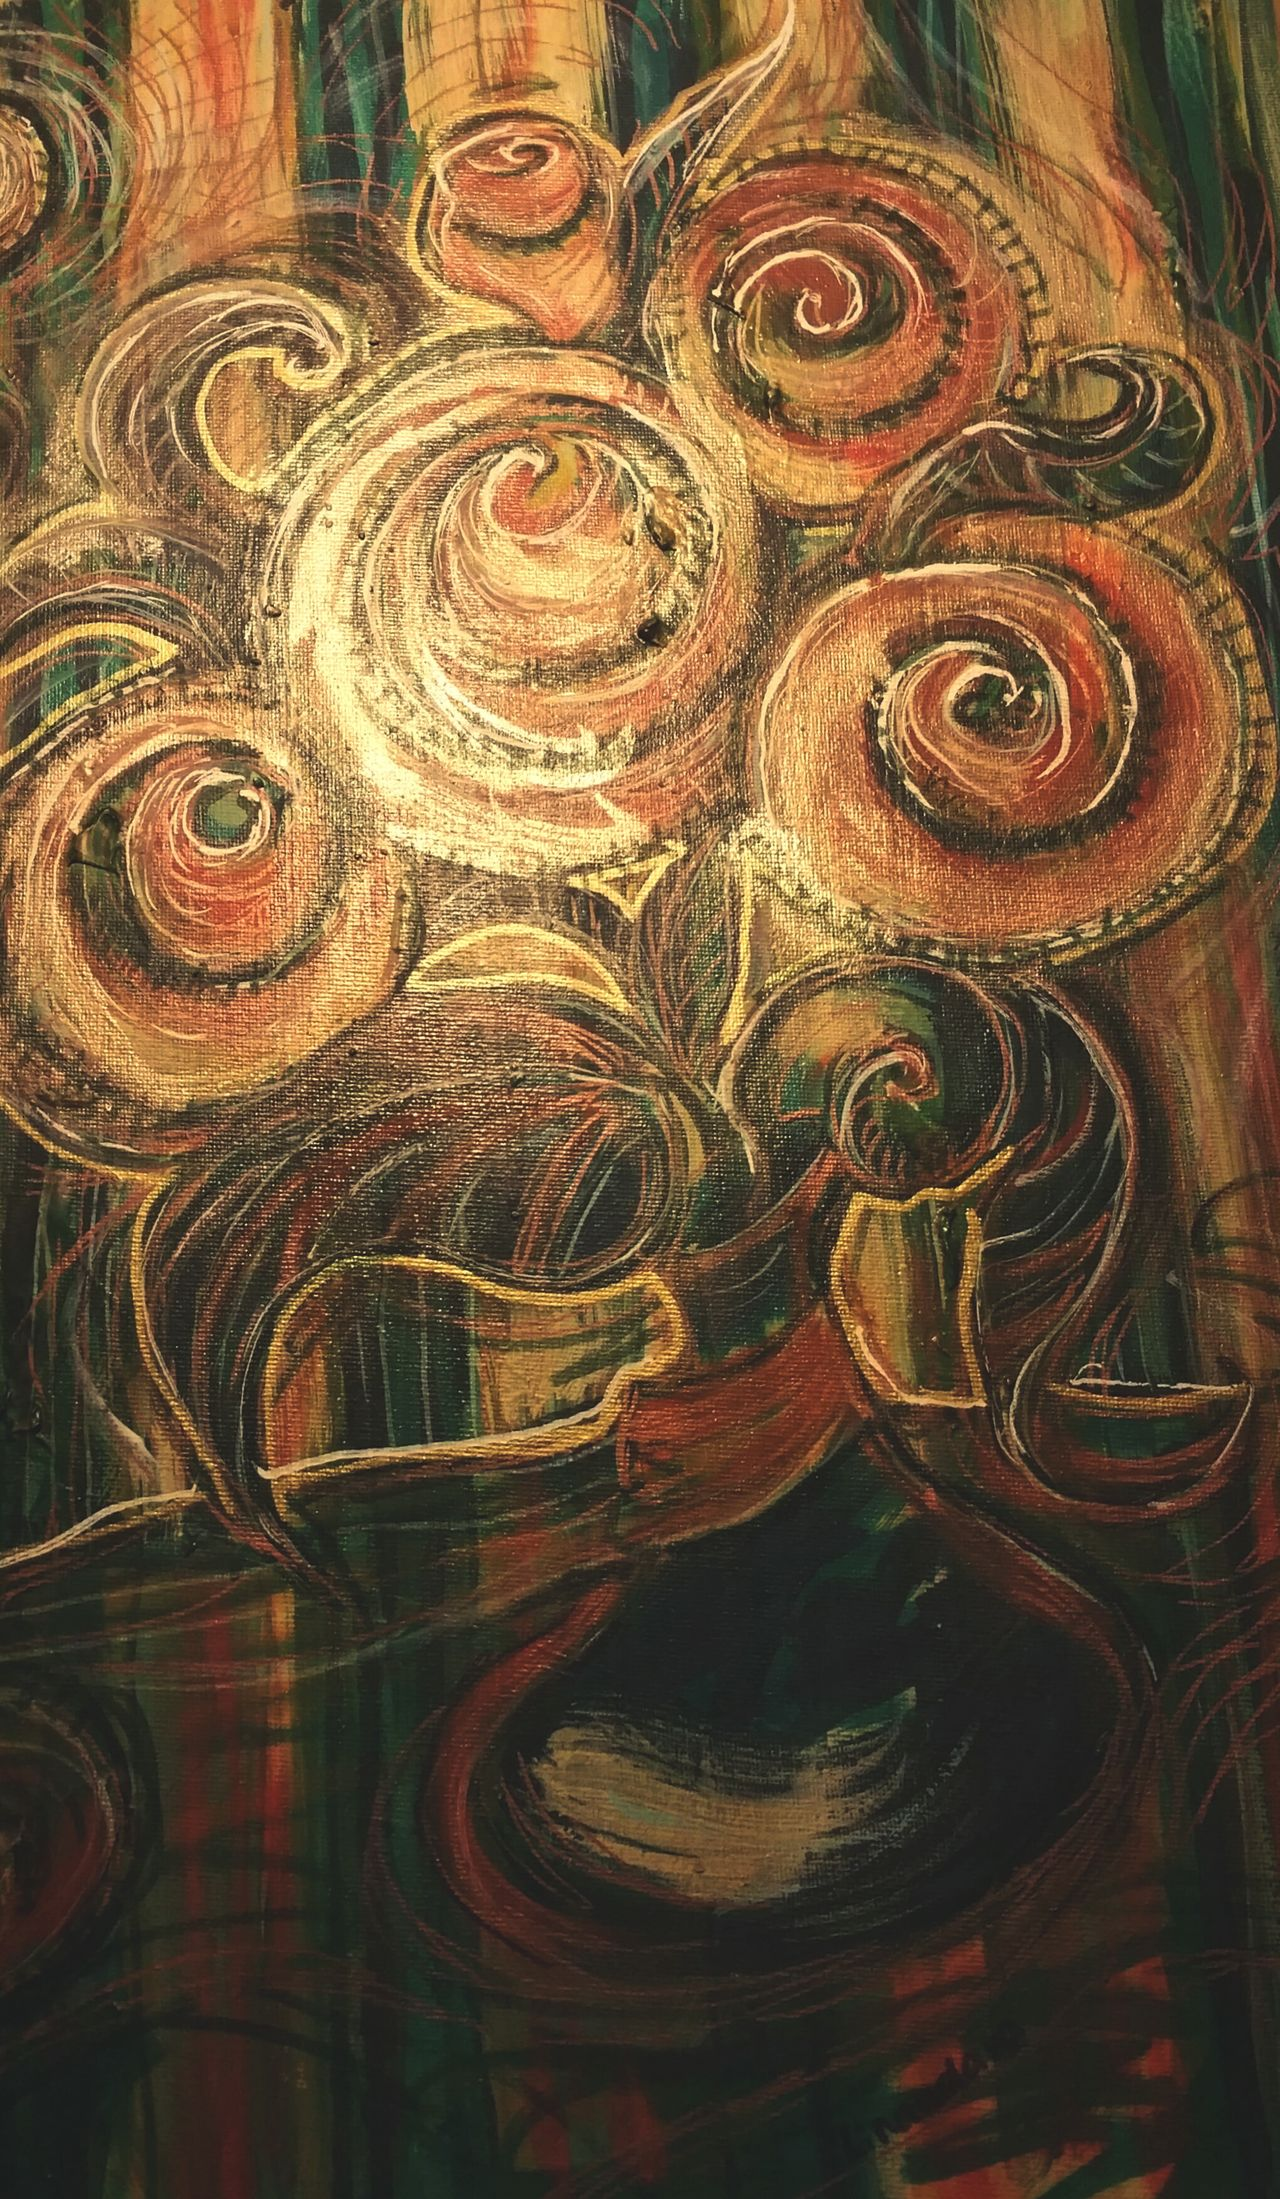 ... lit up part of a Painting ... Concentric Painted Image Multi Colored Close-up Full Frame Backgrounds No People Flowers Swirls Gold Golden Stylized My Art My Artwork Art ArtWork Green Acrylic Acrylic Painting Painted рисунок Arte Flores